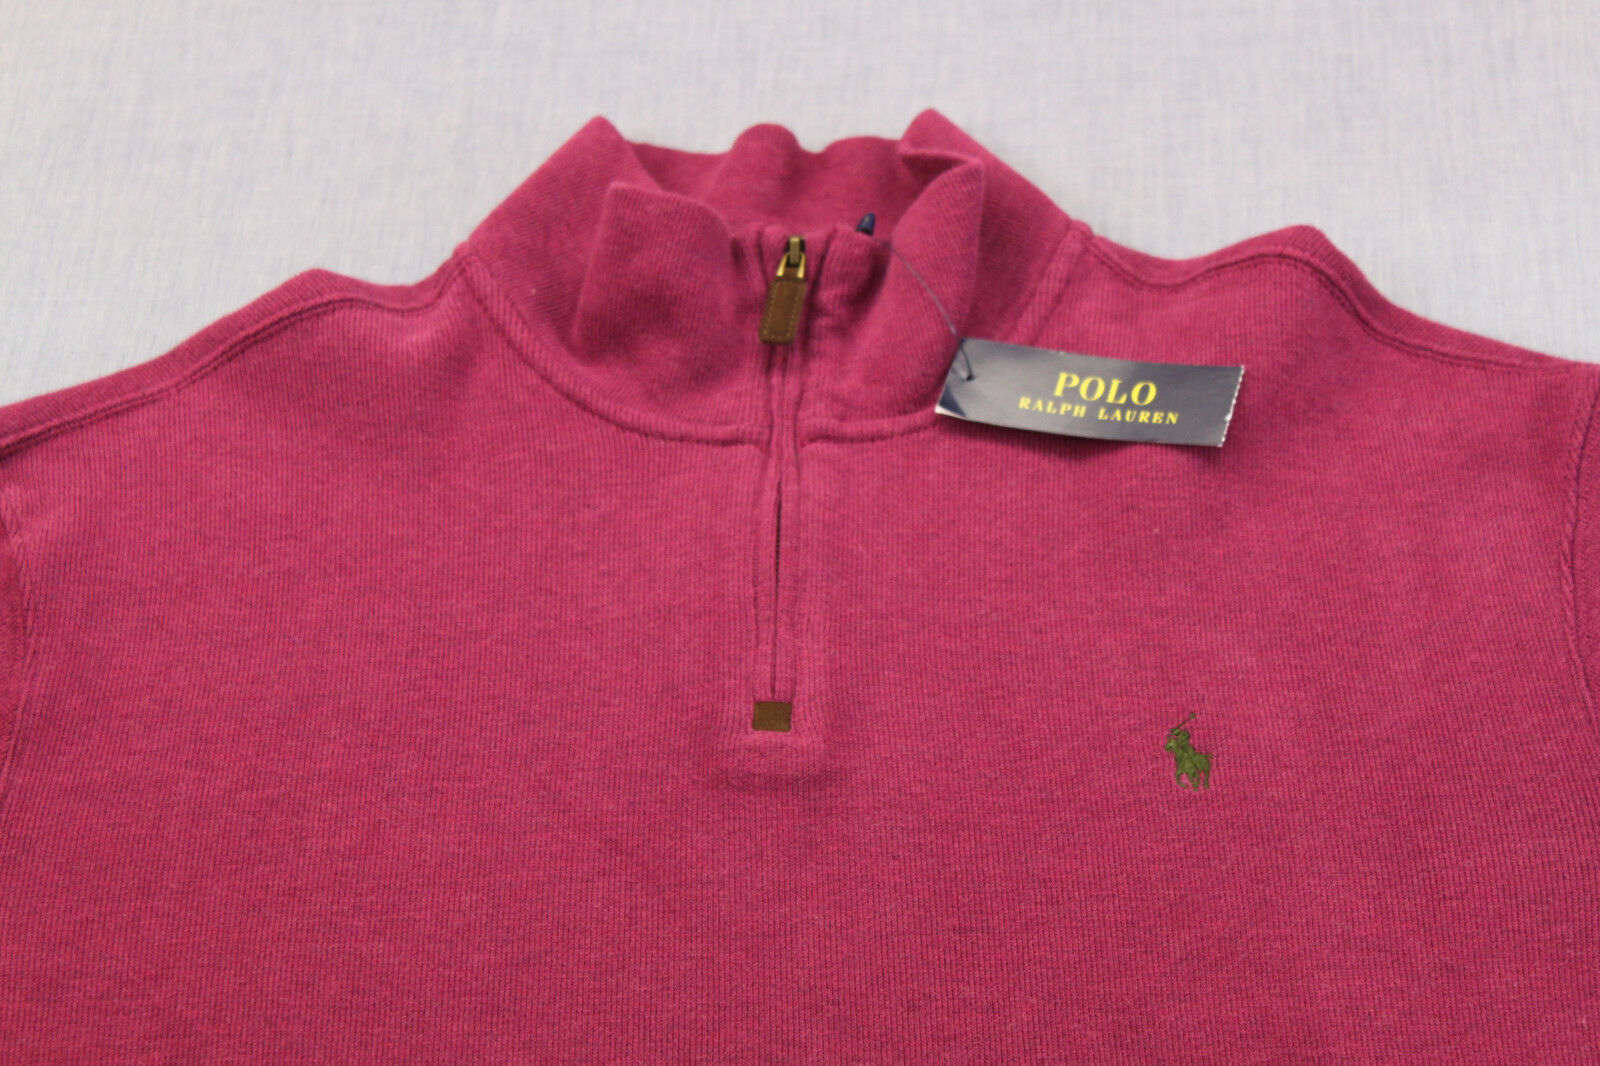 RALPH LAUREN POLO Men PLUM PURPLE PONY Leather 1 4 Zip SWEATER SWEATSHIRT NWT XS